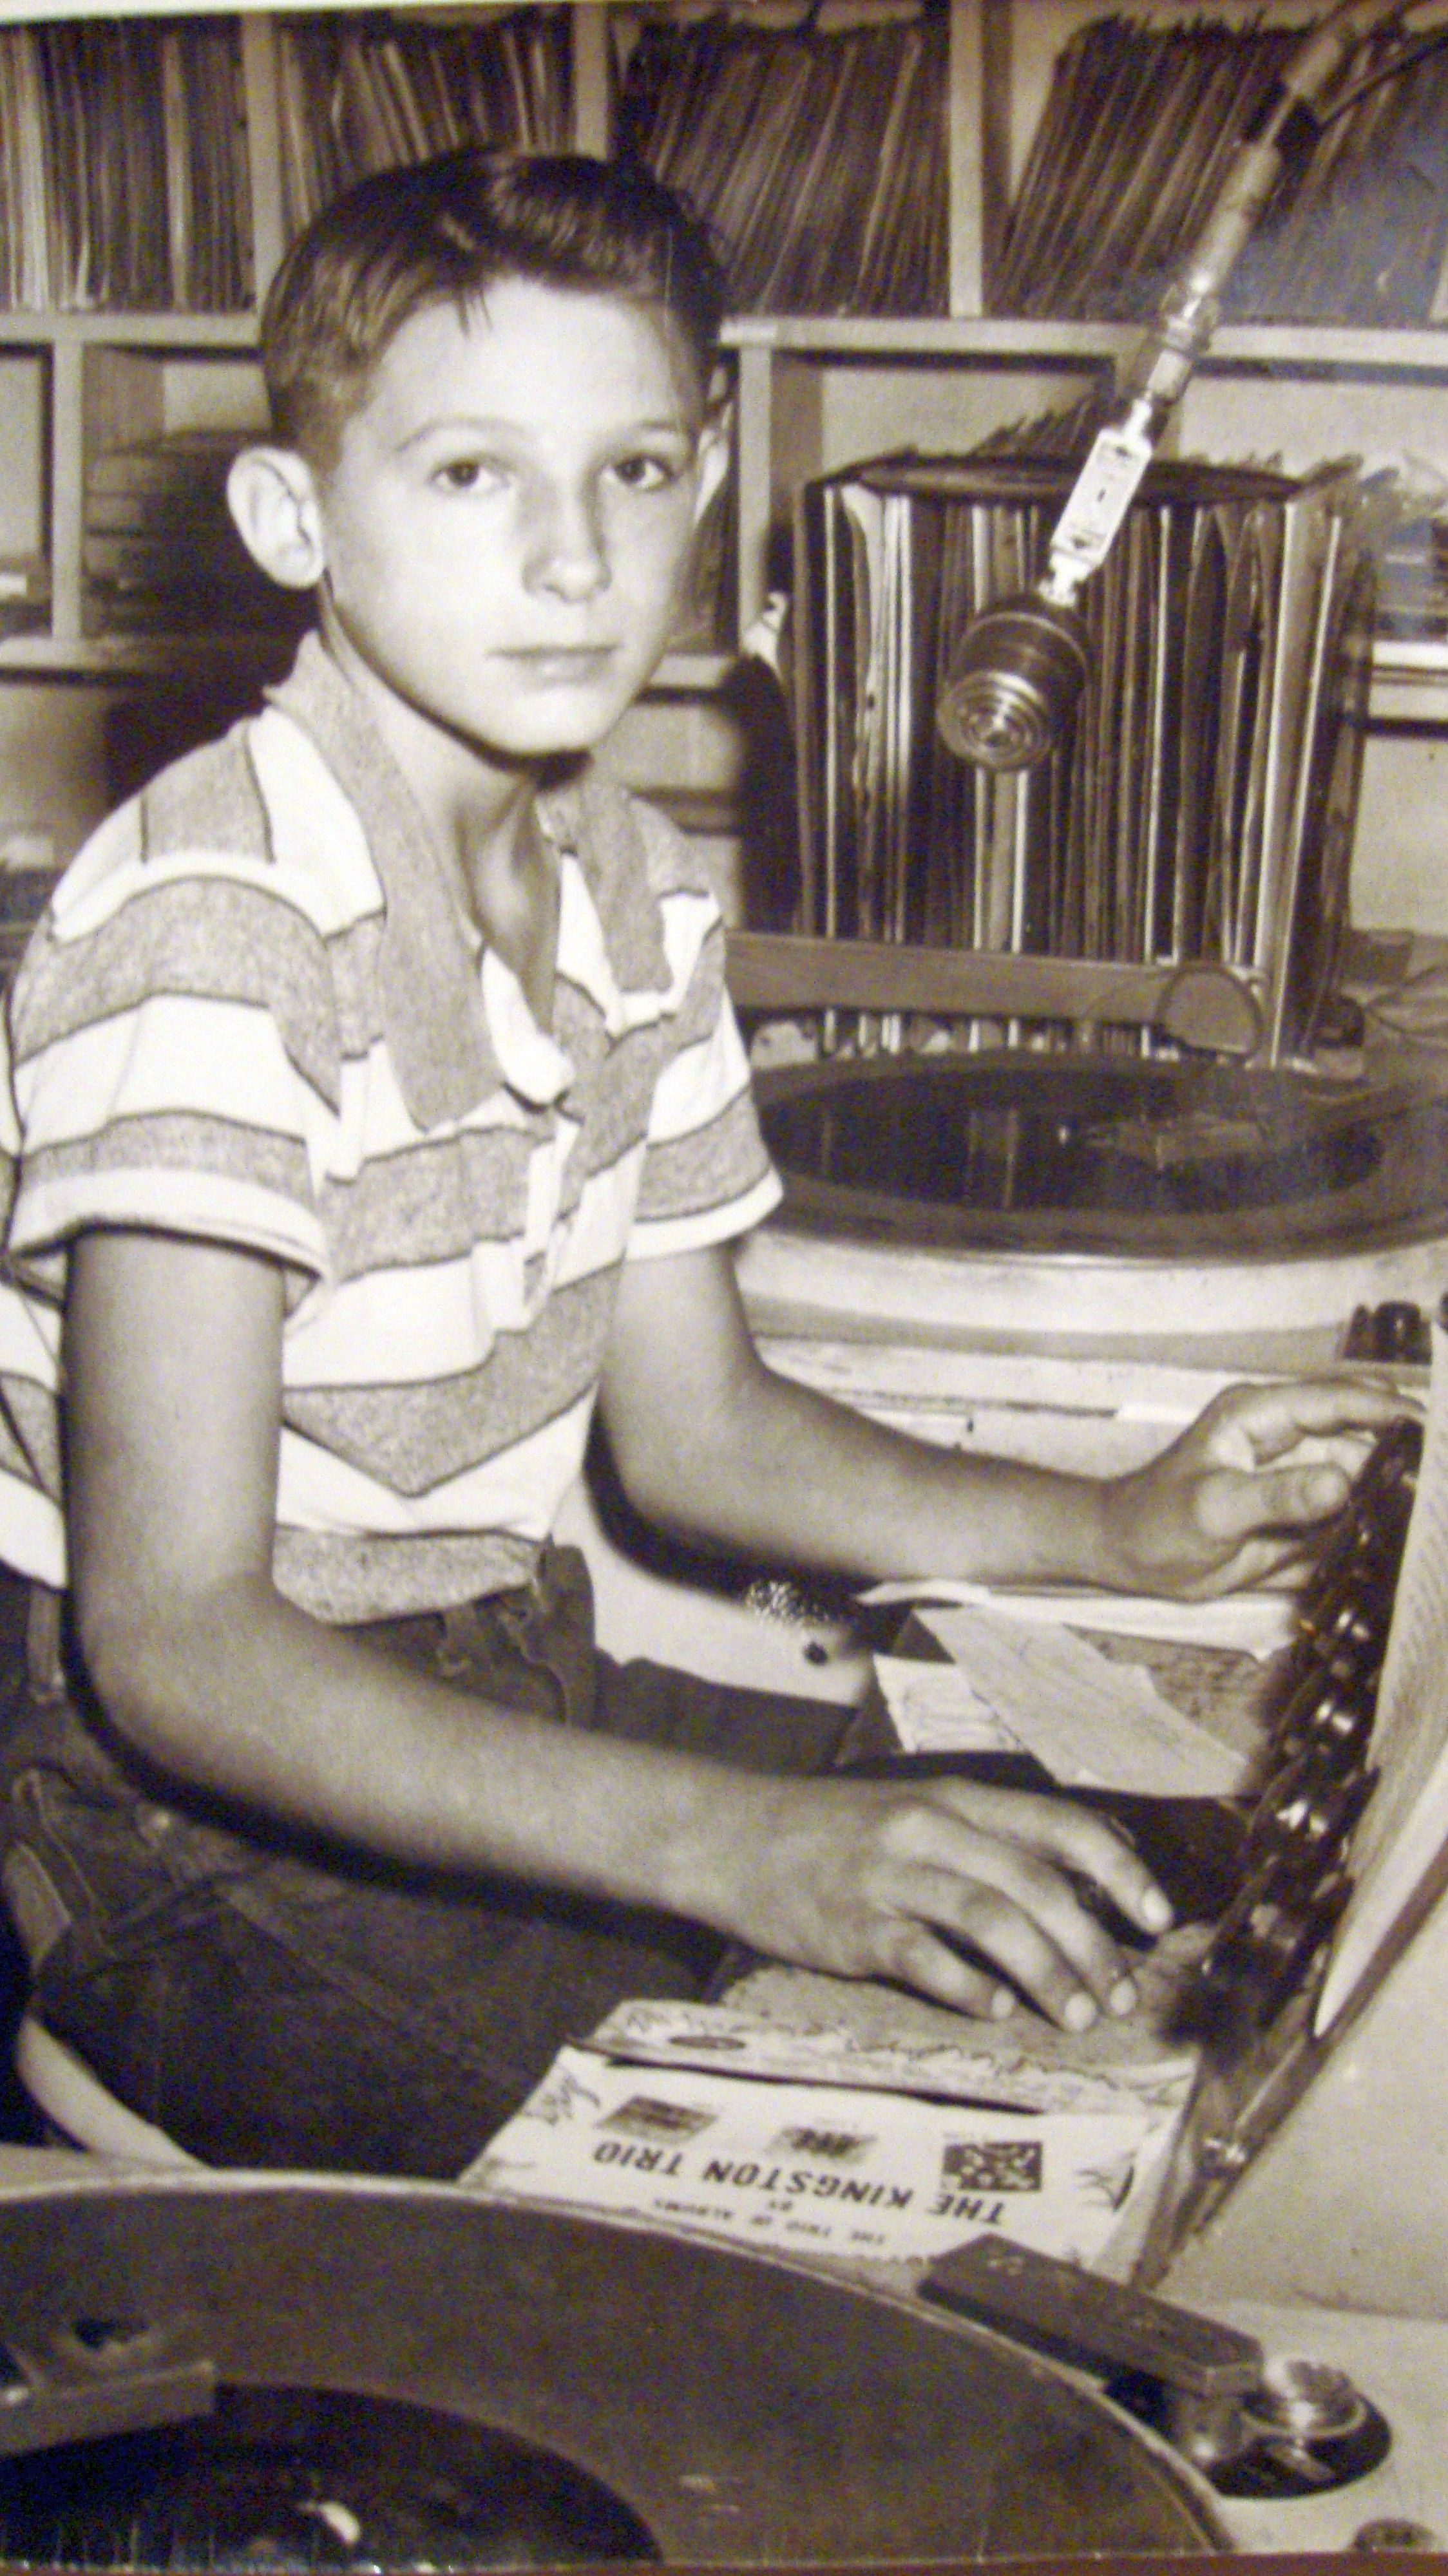 OBJ - World's Youngest DJ at age 9 - pictured here in 1959 at age 11 - KOLJ, Quanah, Texas